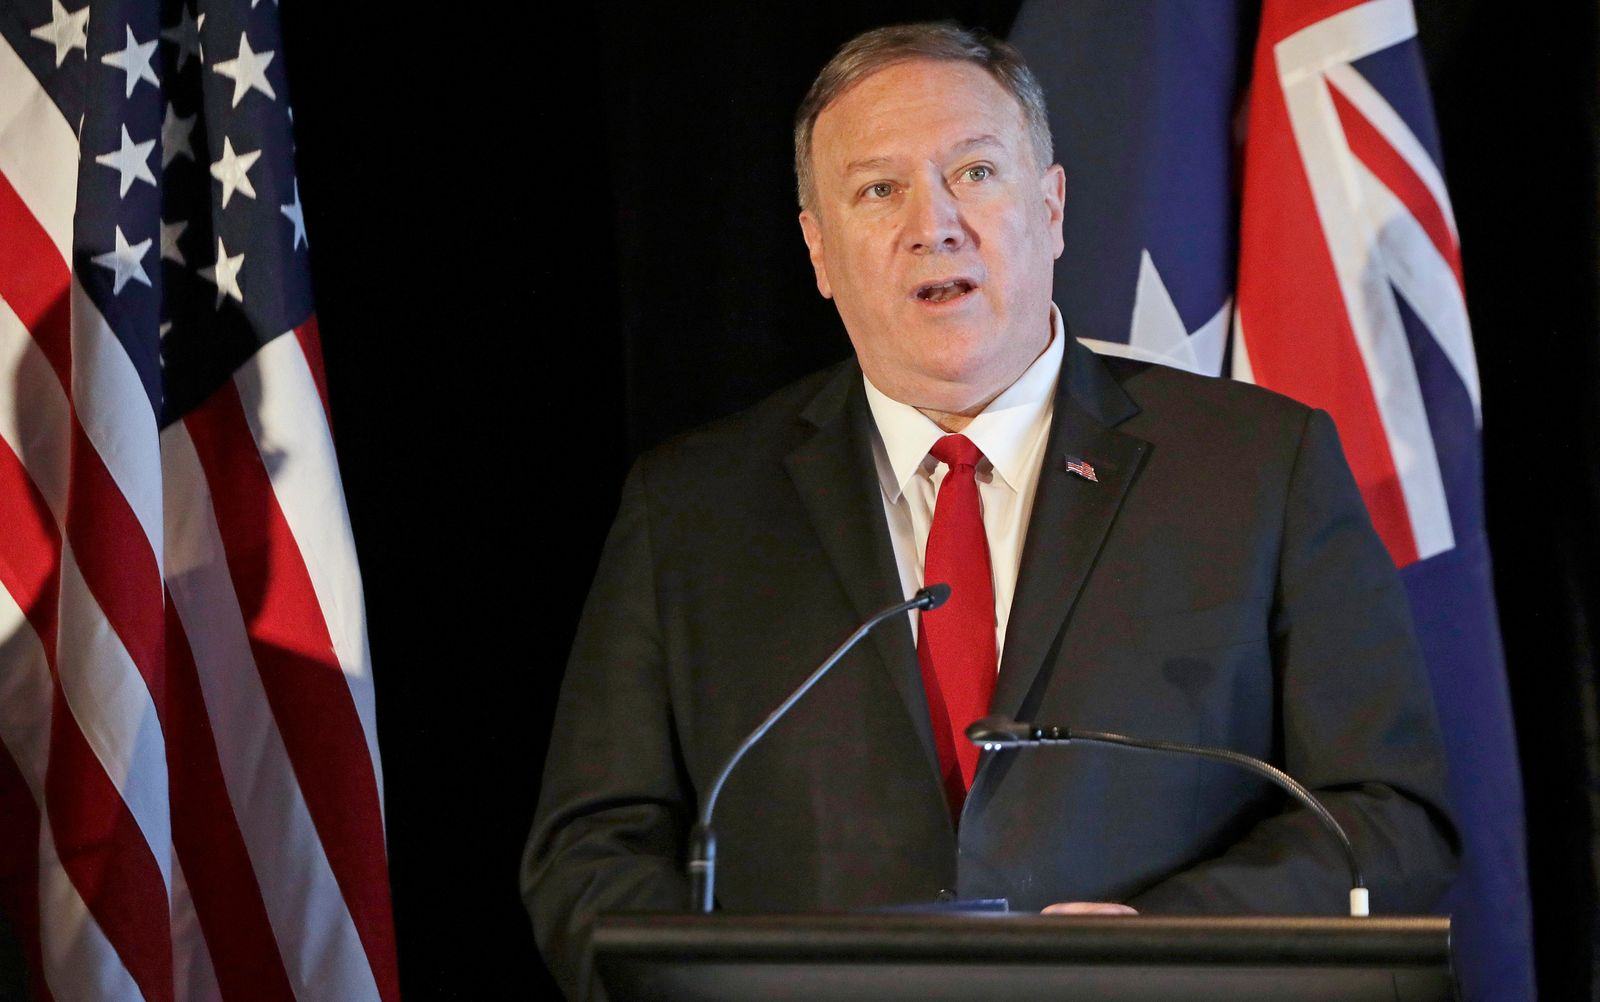 U.S. Secretary of State Mike Pompeo briefs the media at a press conference following annual bilateral talks with Australian counterparts in Sydney, Australia, Sunday, Aug. 4, 2019. (AP Photo/Rick Rycroft)